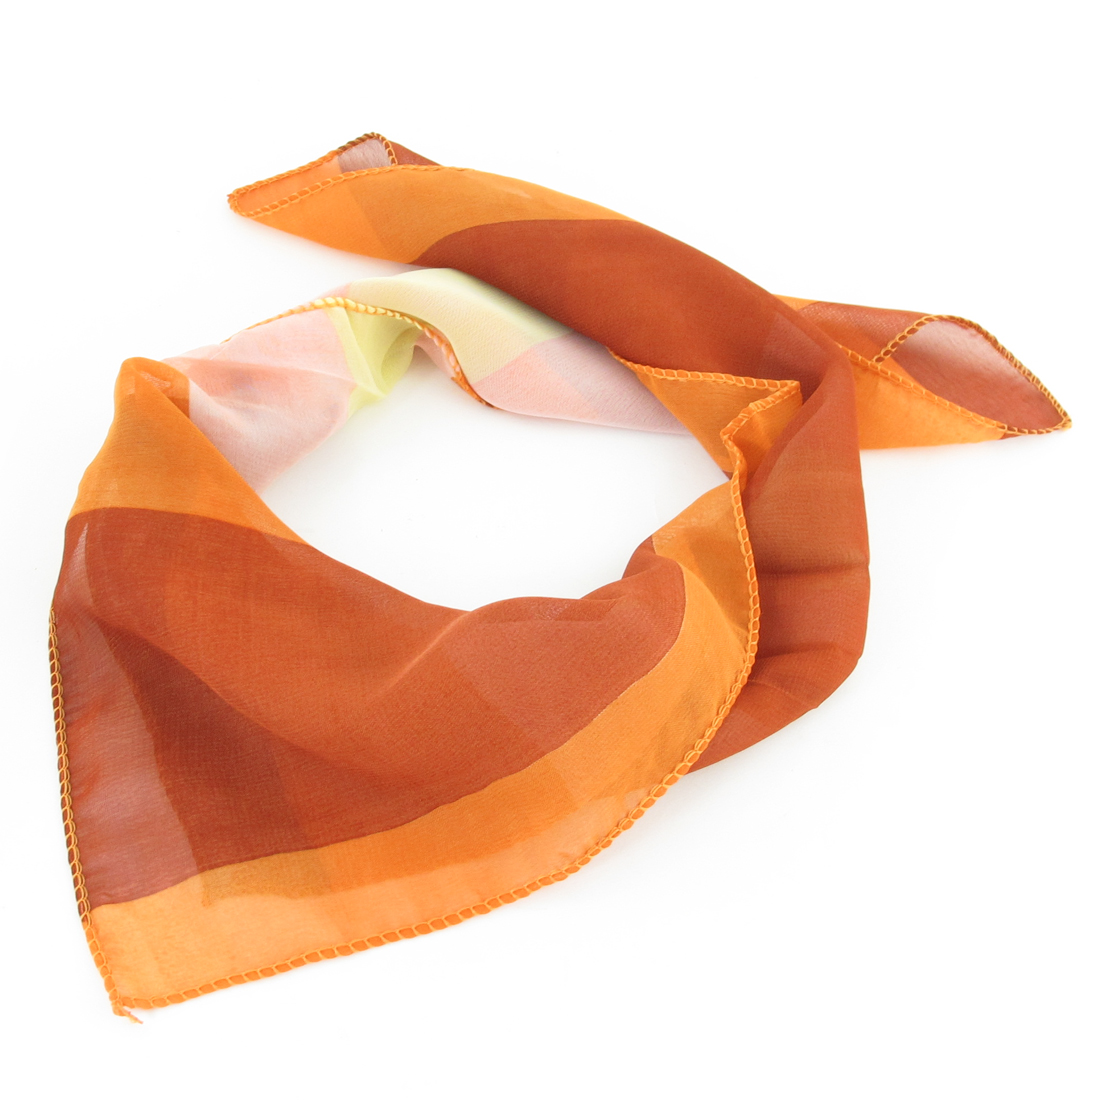 Assoted Color Strips Pattern Square Shape Neck Scarf Wrap Kerchief for Women